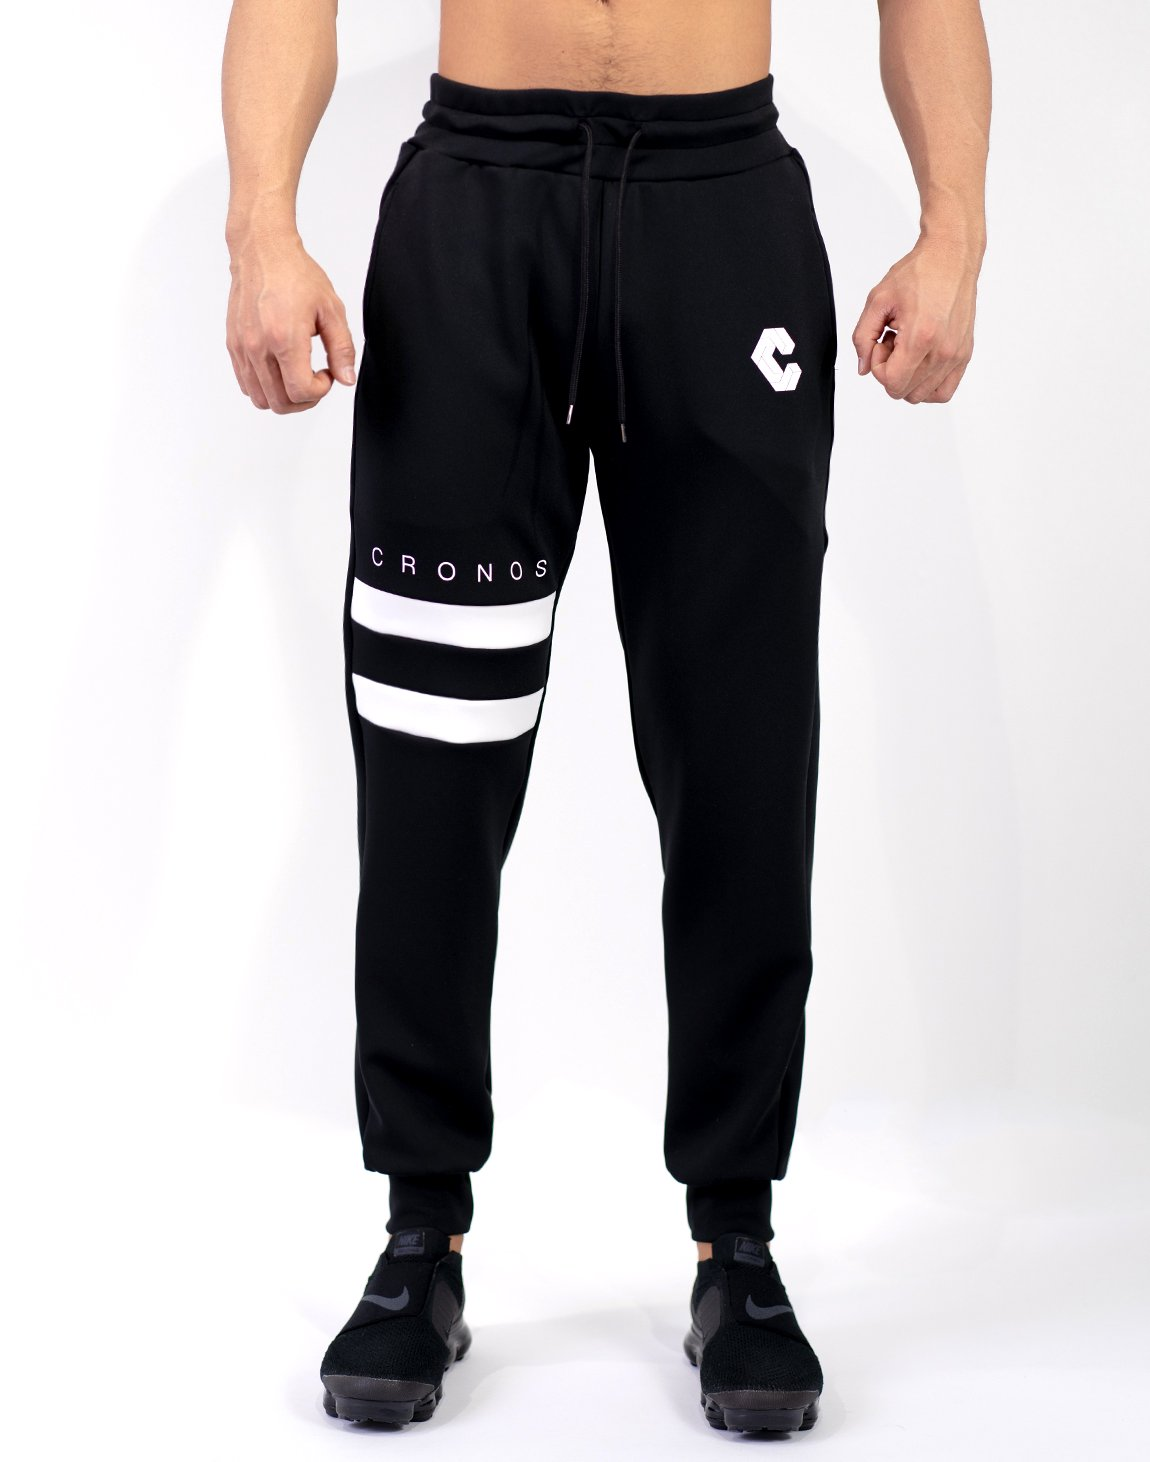 <img class='new_mark_img1' src='https://img.shop-pro.jp/img/new/icons1.gif' style='border:none;display:inline;margin:0px;padding:0px;width:auto;' />Mode Tow Line Jogger Pants Black